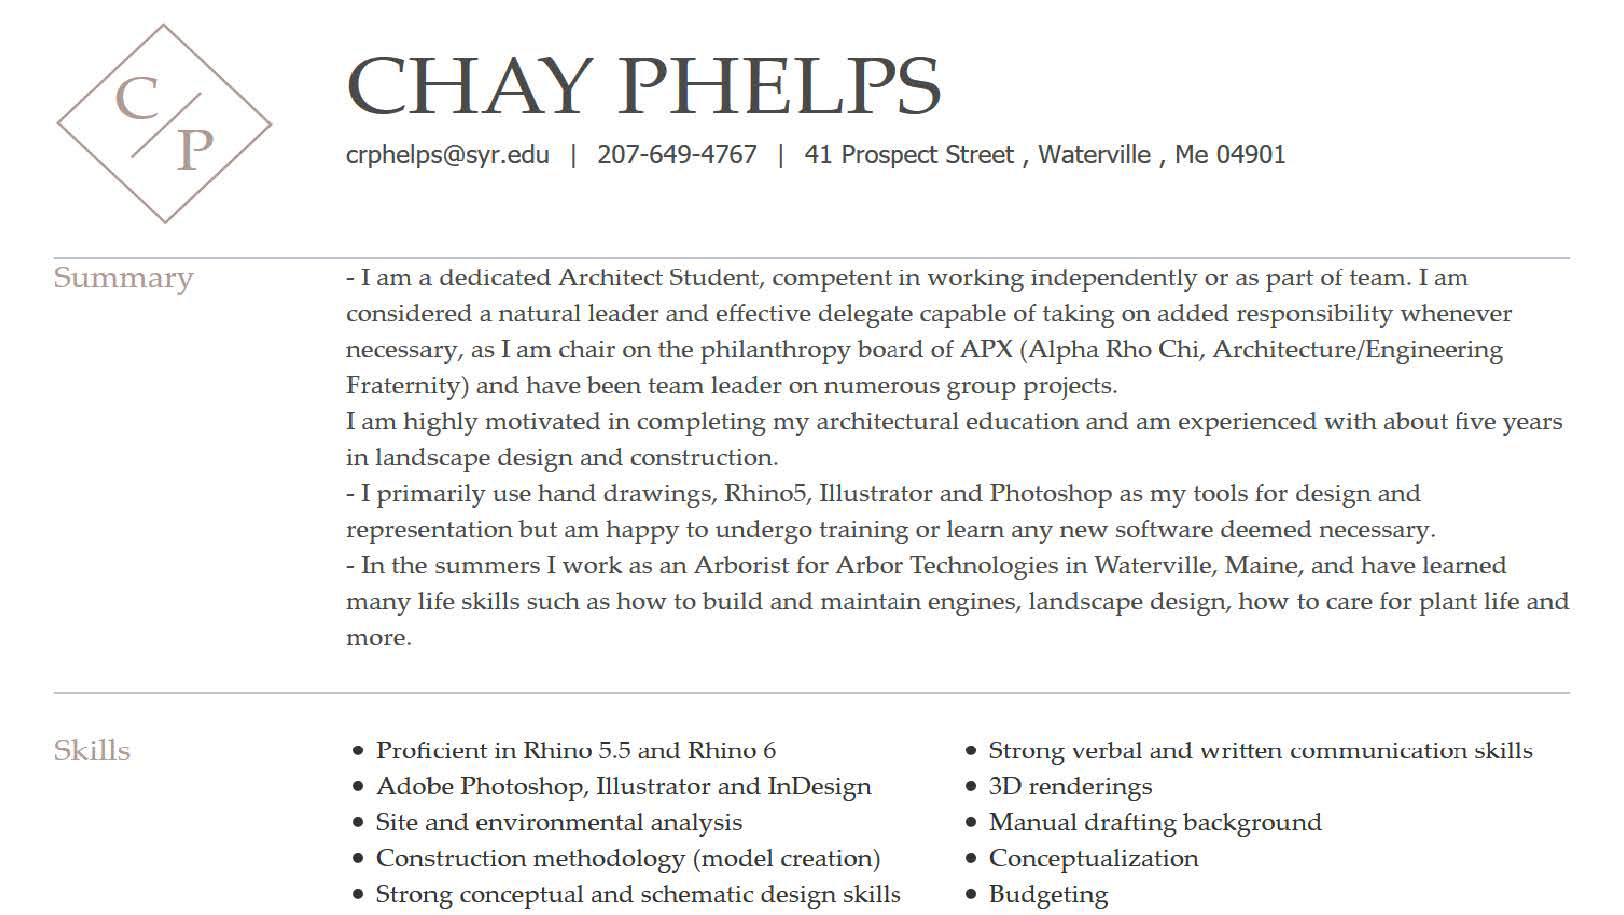 Chay Phelps - credentials